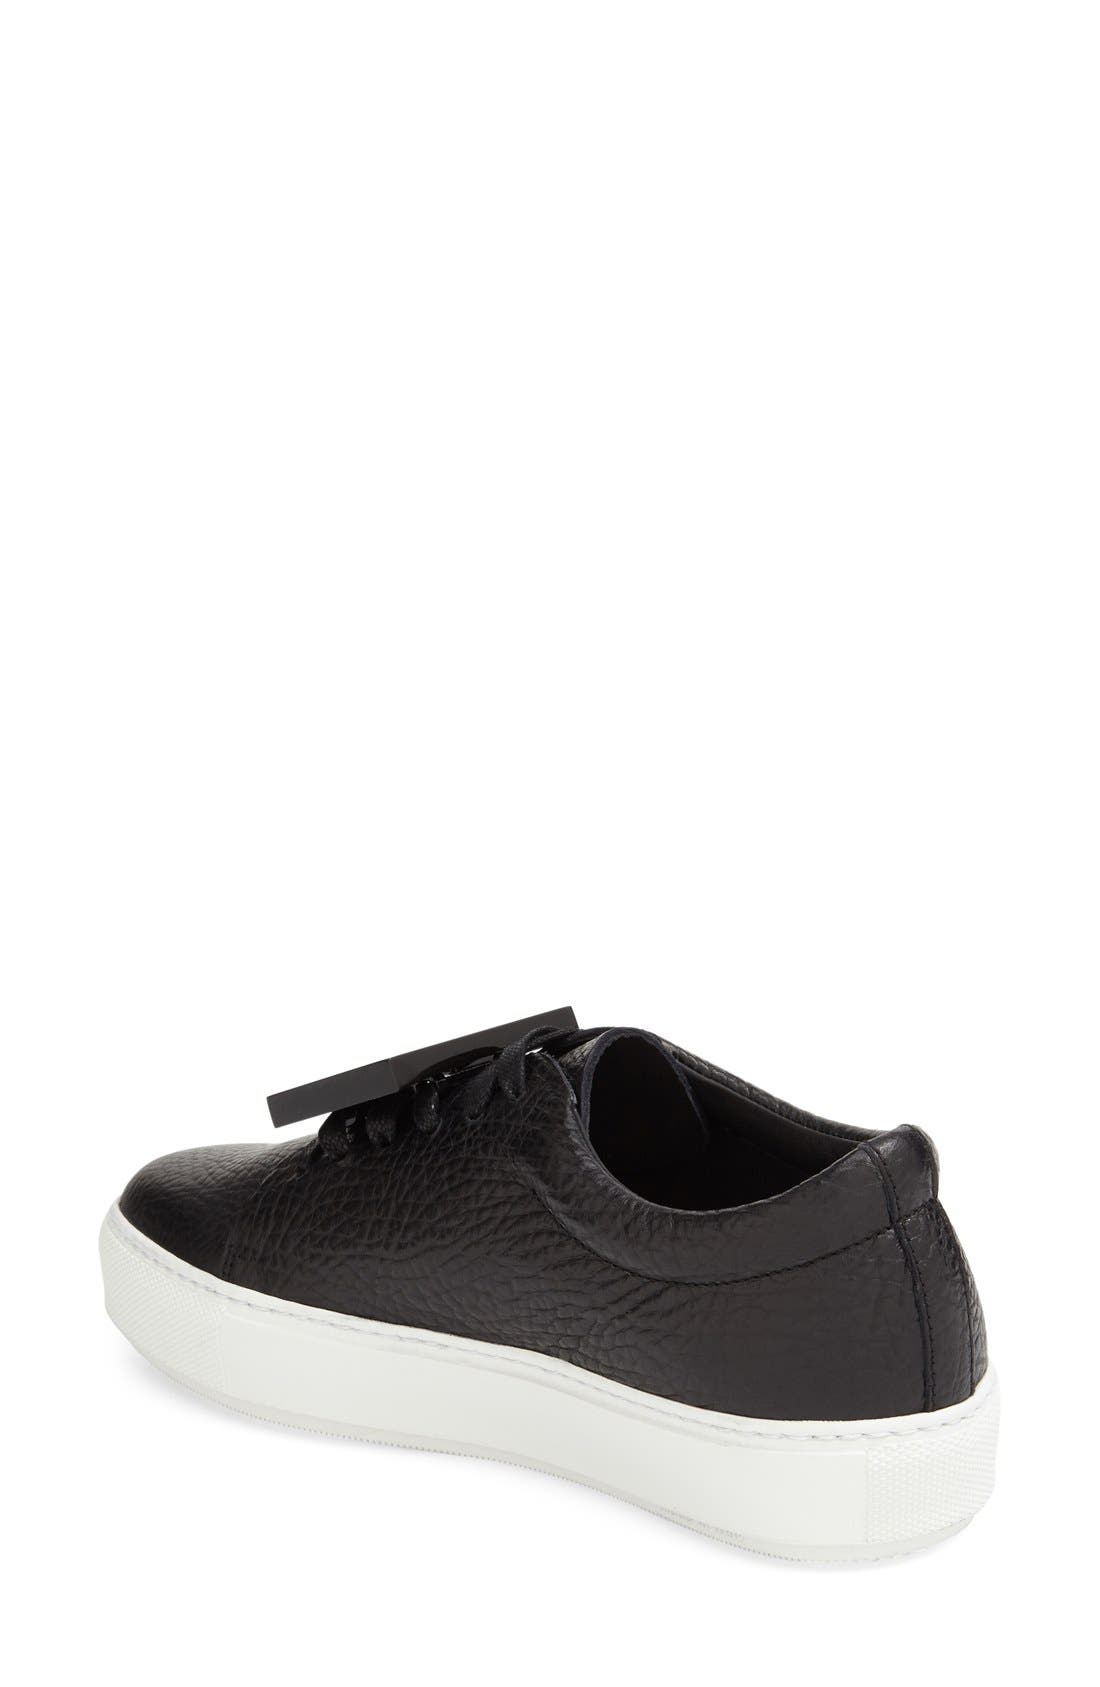 Adriana - Grain Leather Sneaker,                             Alternate thumbnail 2, color,                             Black Leather